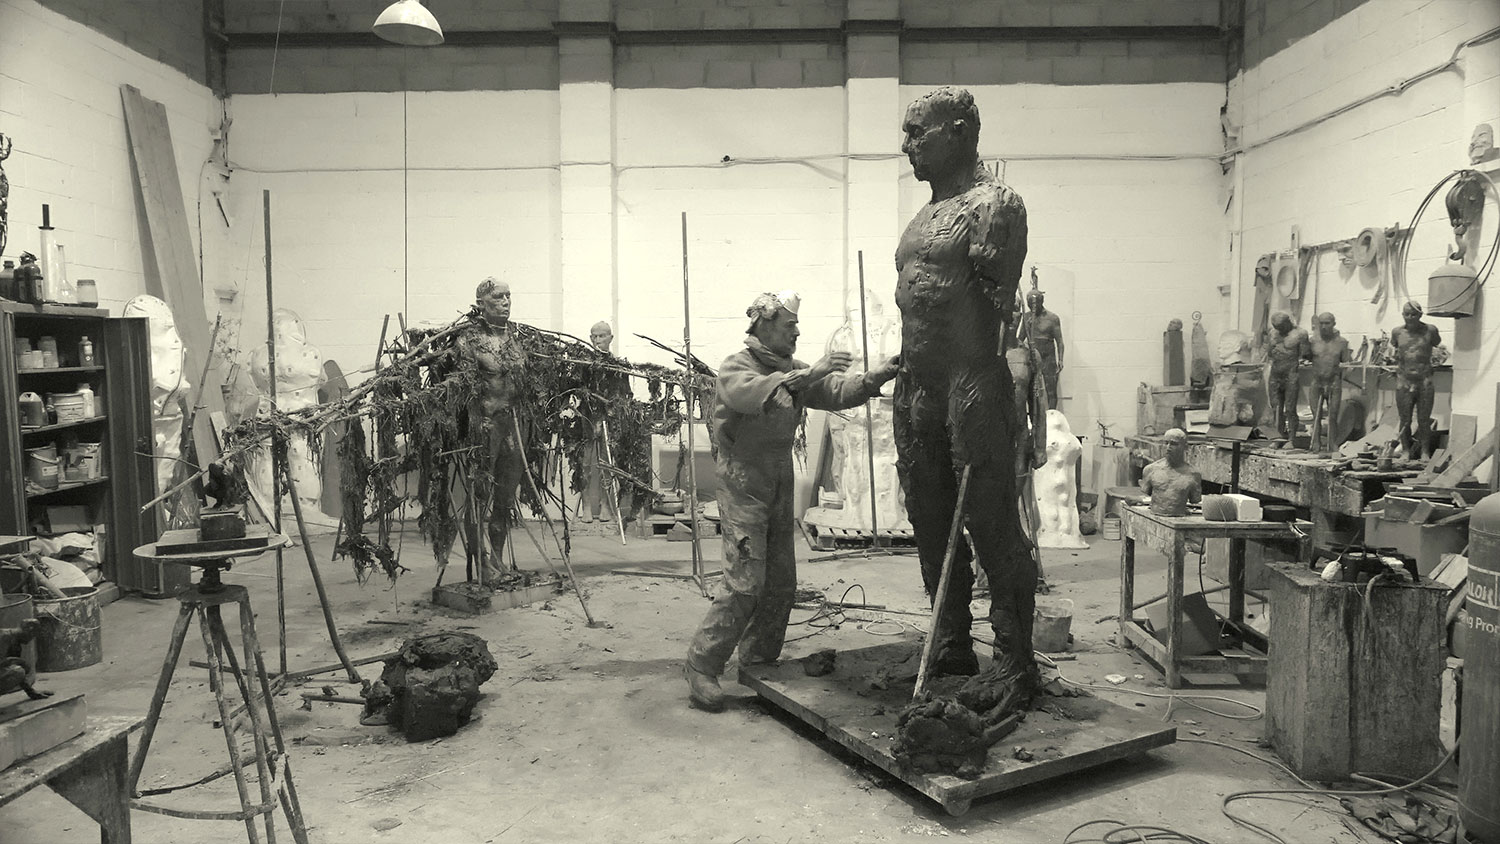 Laurence works on the clay sculpture